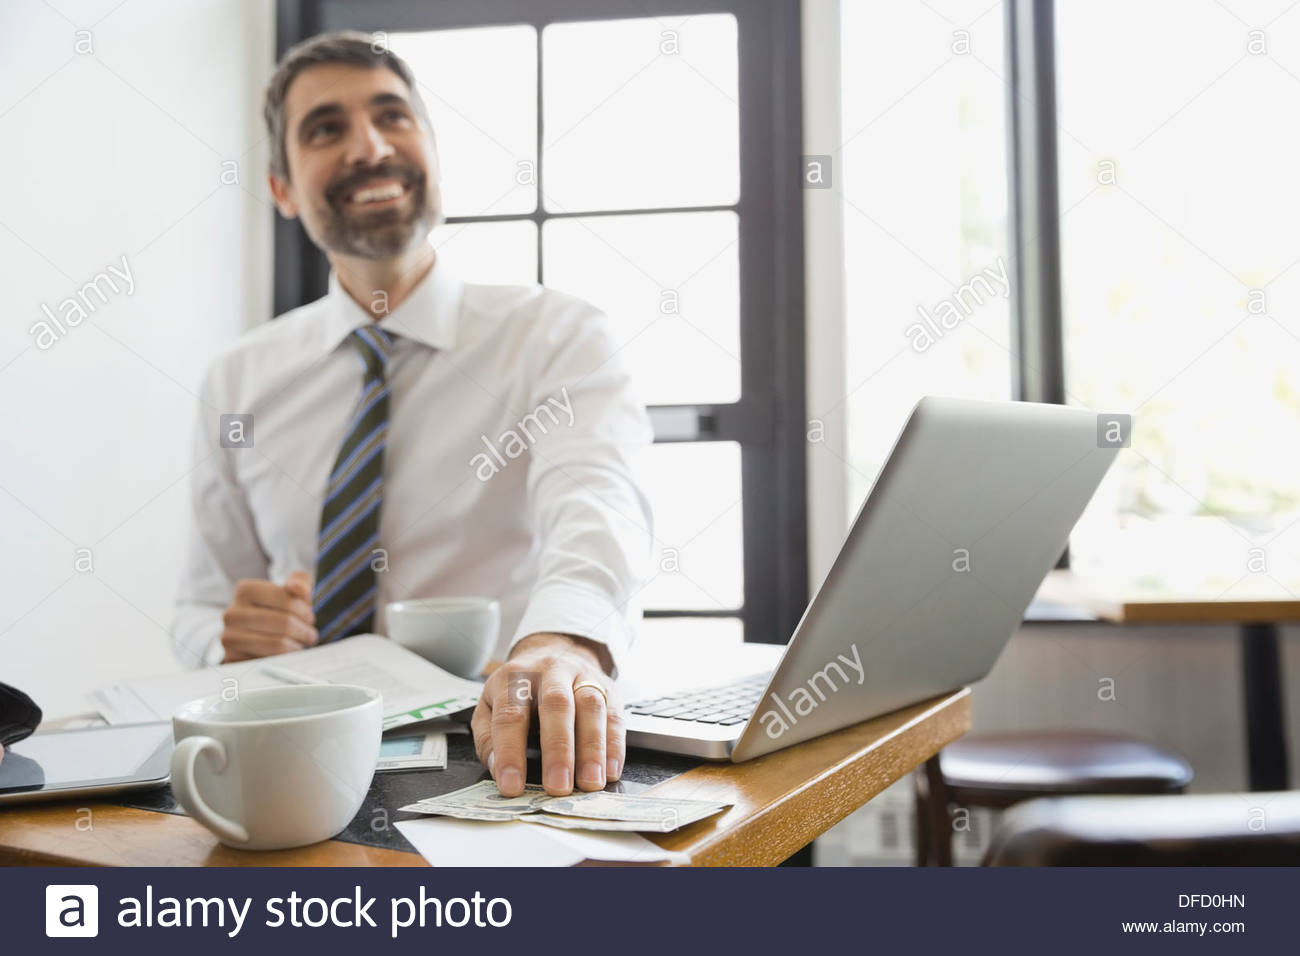 Businessman paying restaurant bill with cash - Stock Image